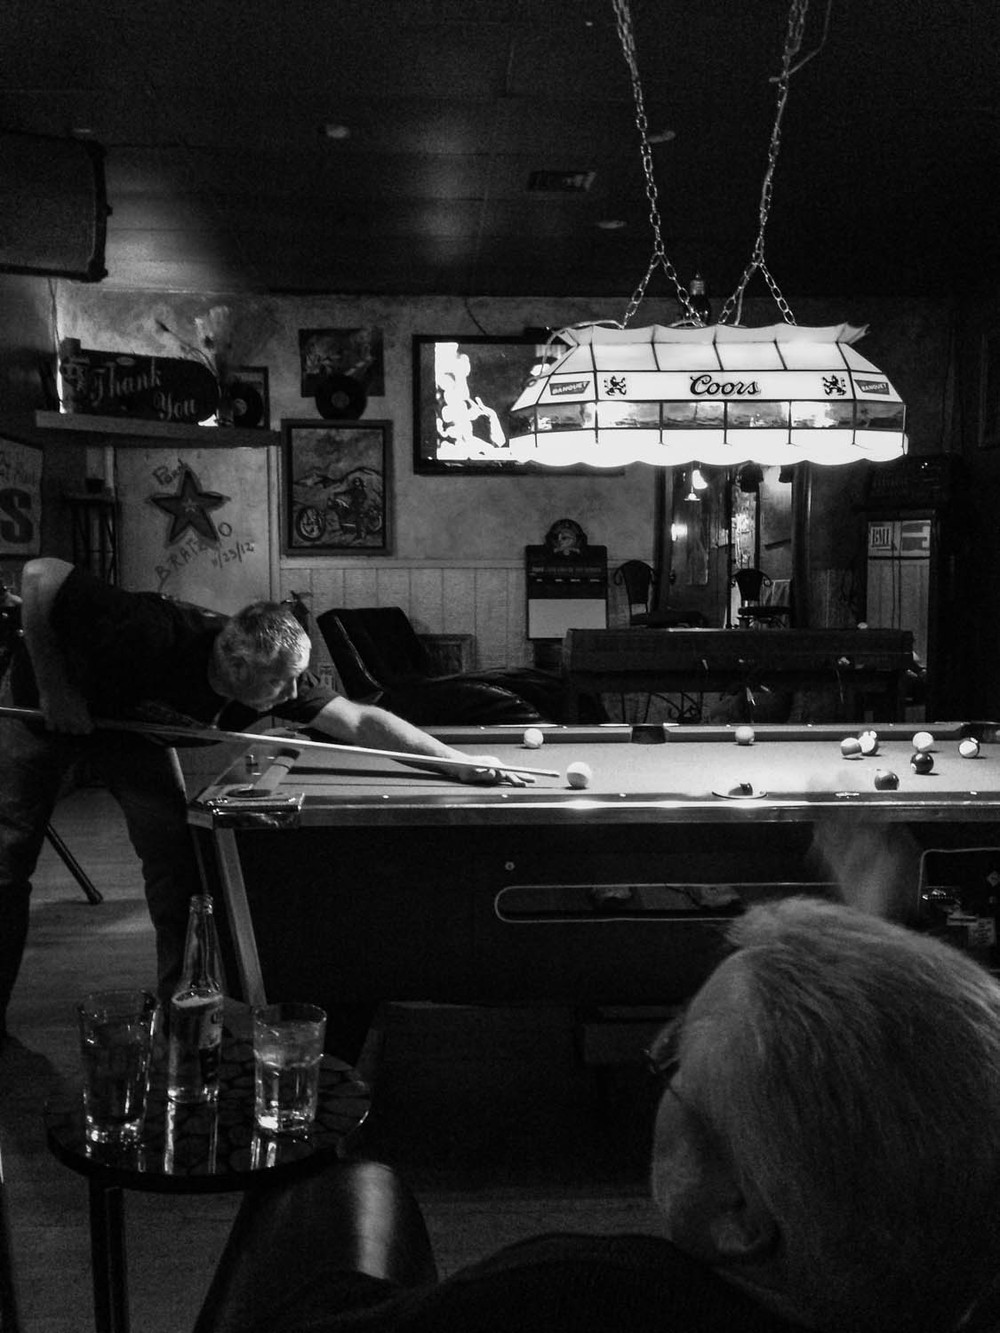 At the bottom of the mountain, there is a cafe / bar called Route 6 that had great food and a pool table. The light over the pool table provided great spotlighting for this shot.